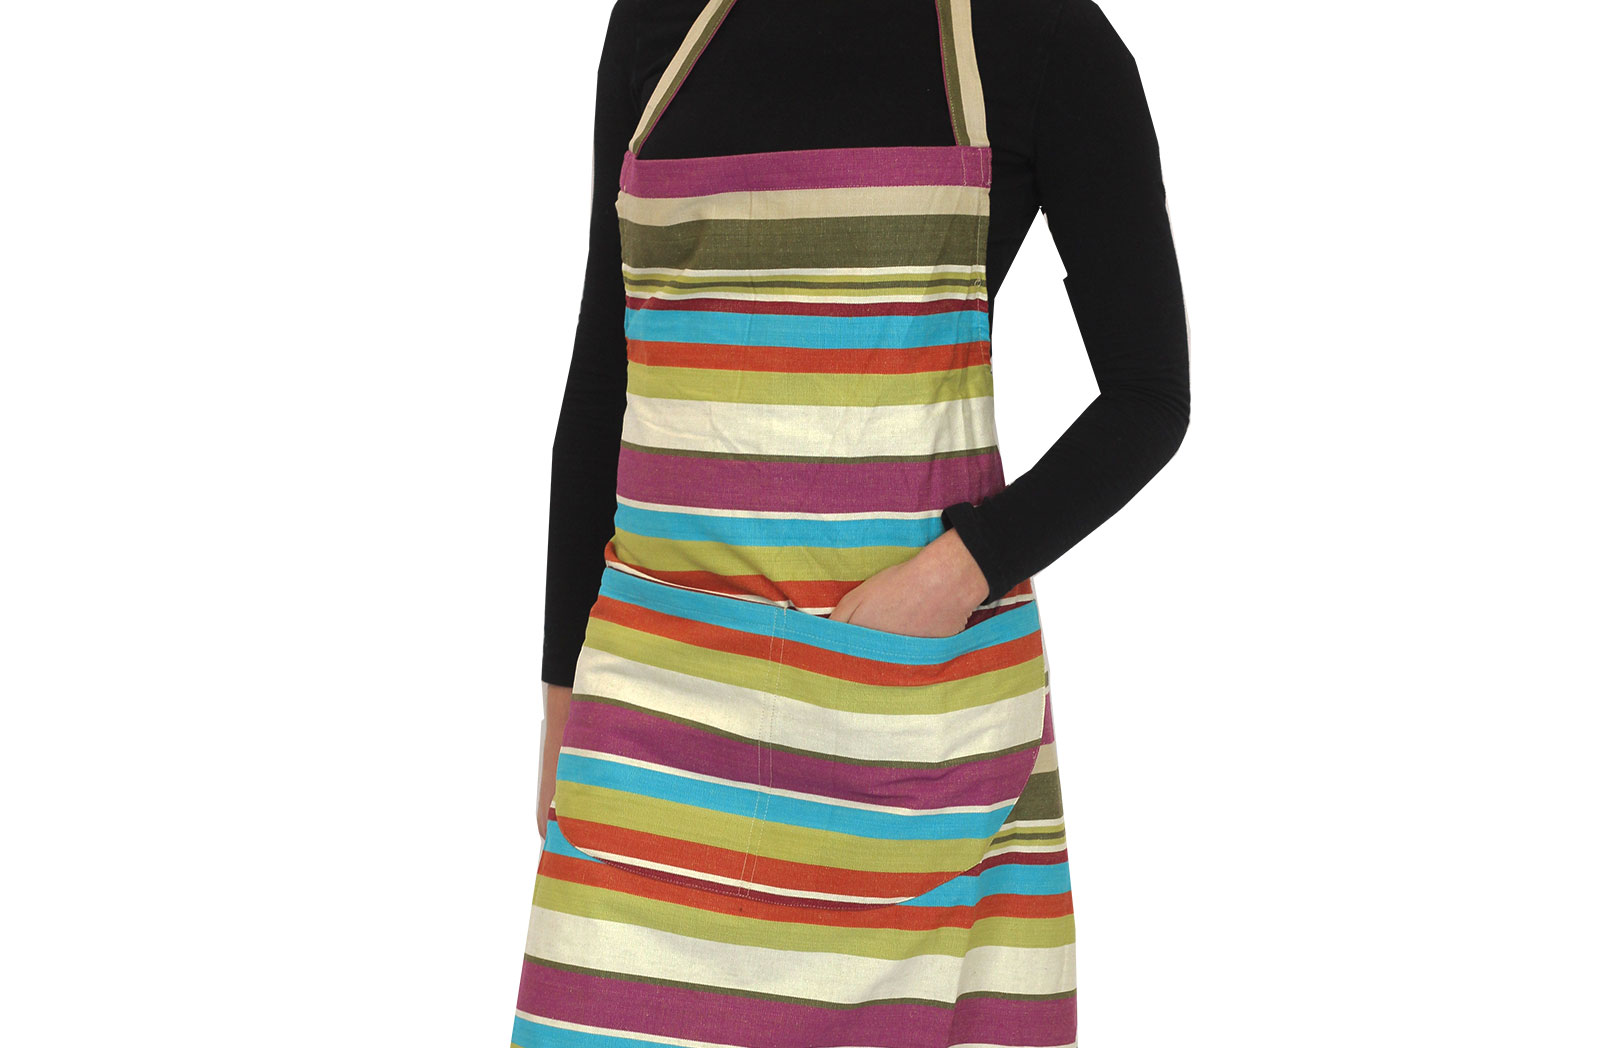 cream, green, turquoise - Striped Cotton Aprons